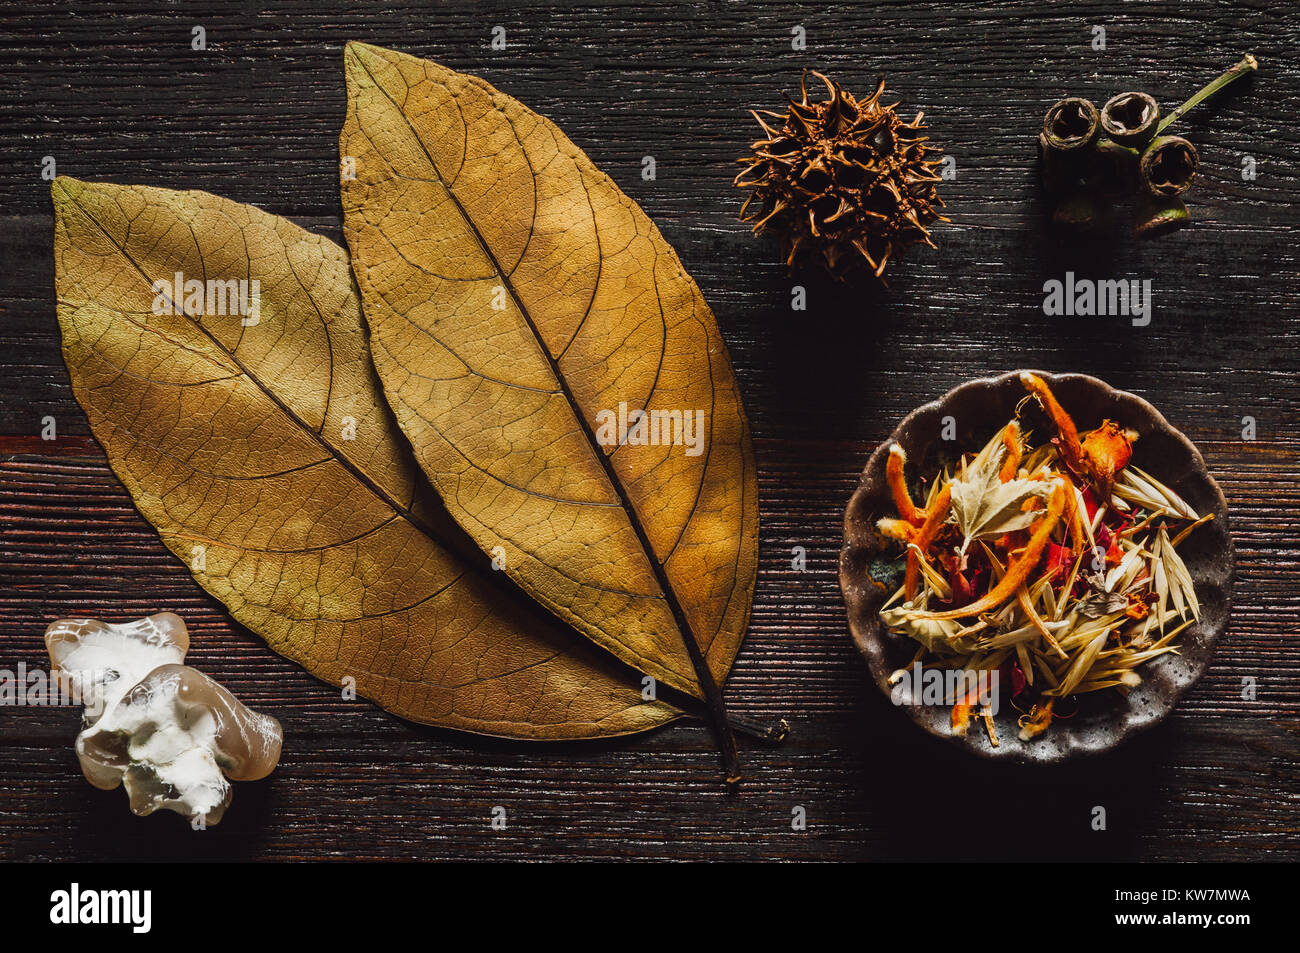 Autumn Collection of Dried, Pressed Leaves, Straw Grass, Flower Petals and Seed Pods on Dark Table - Stock Image